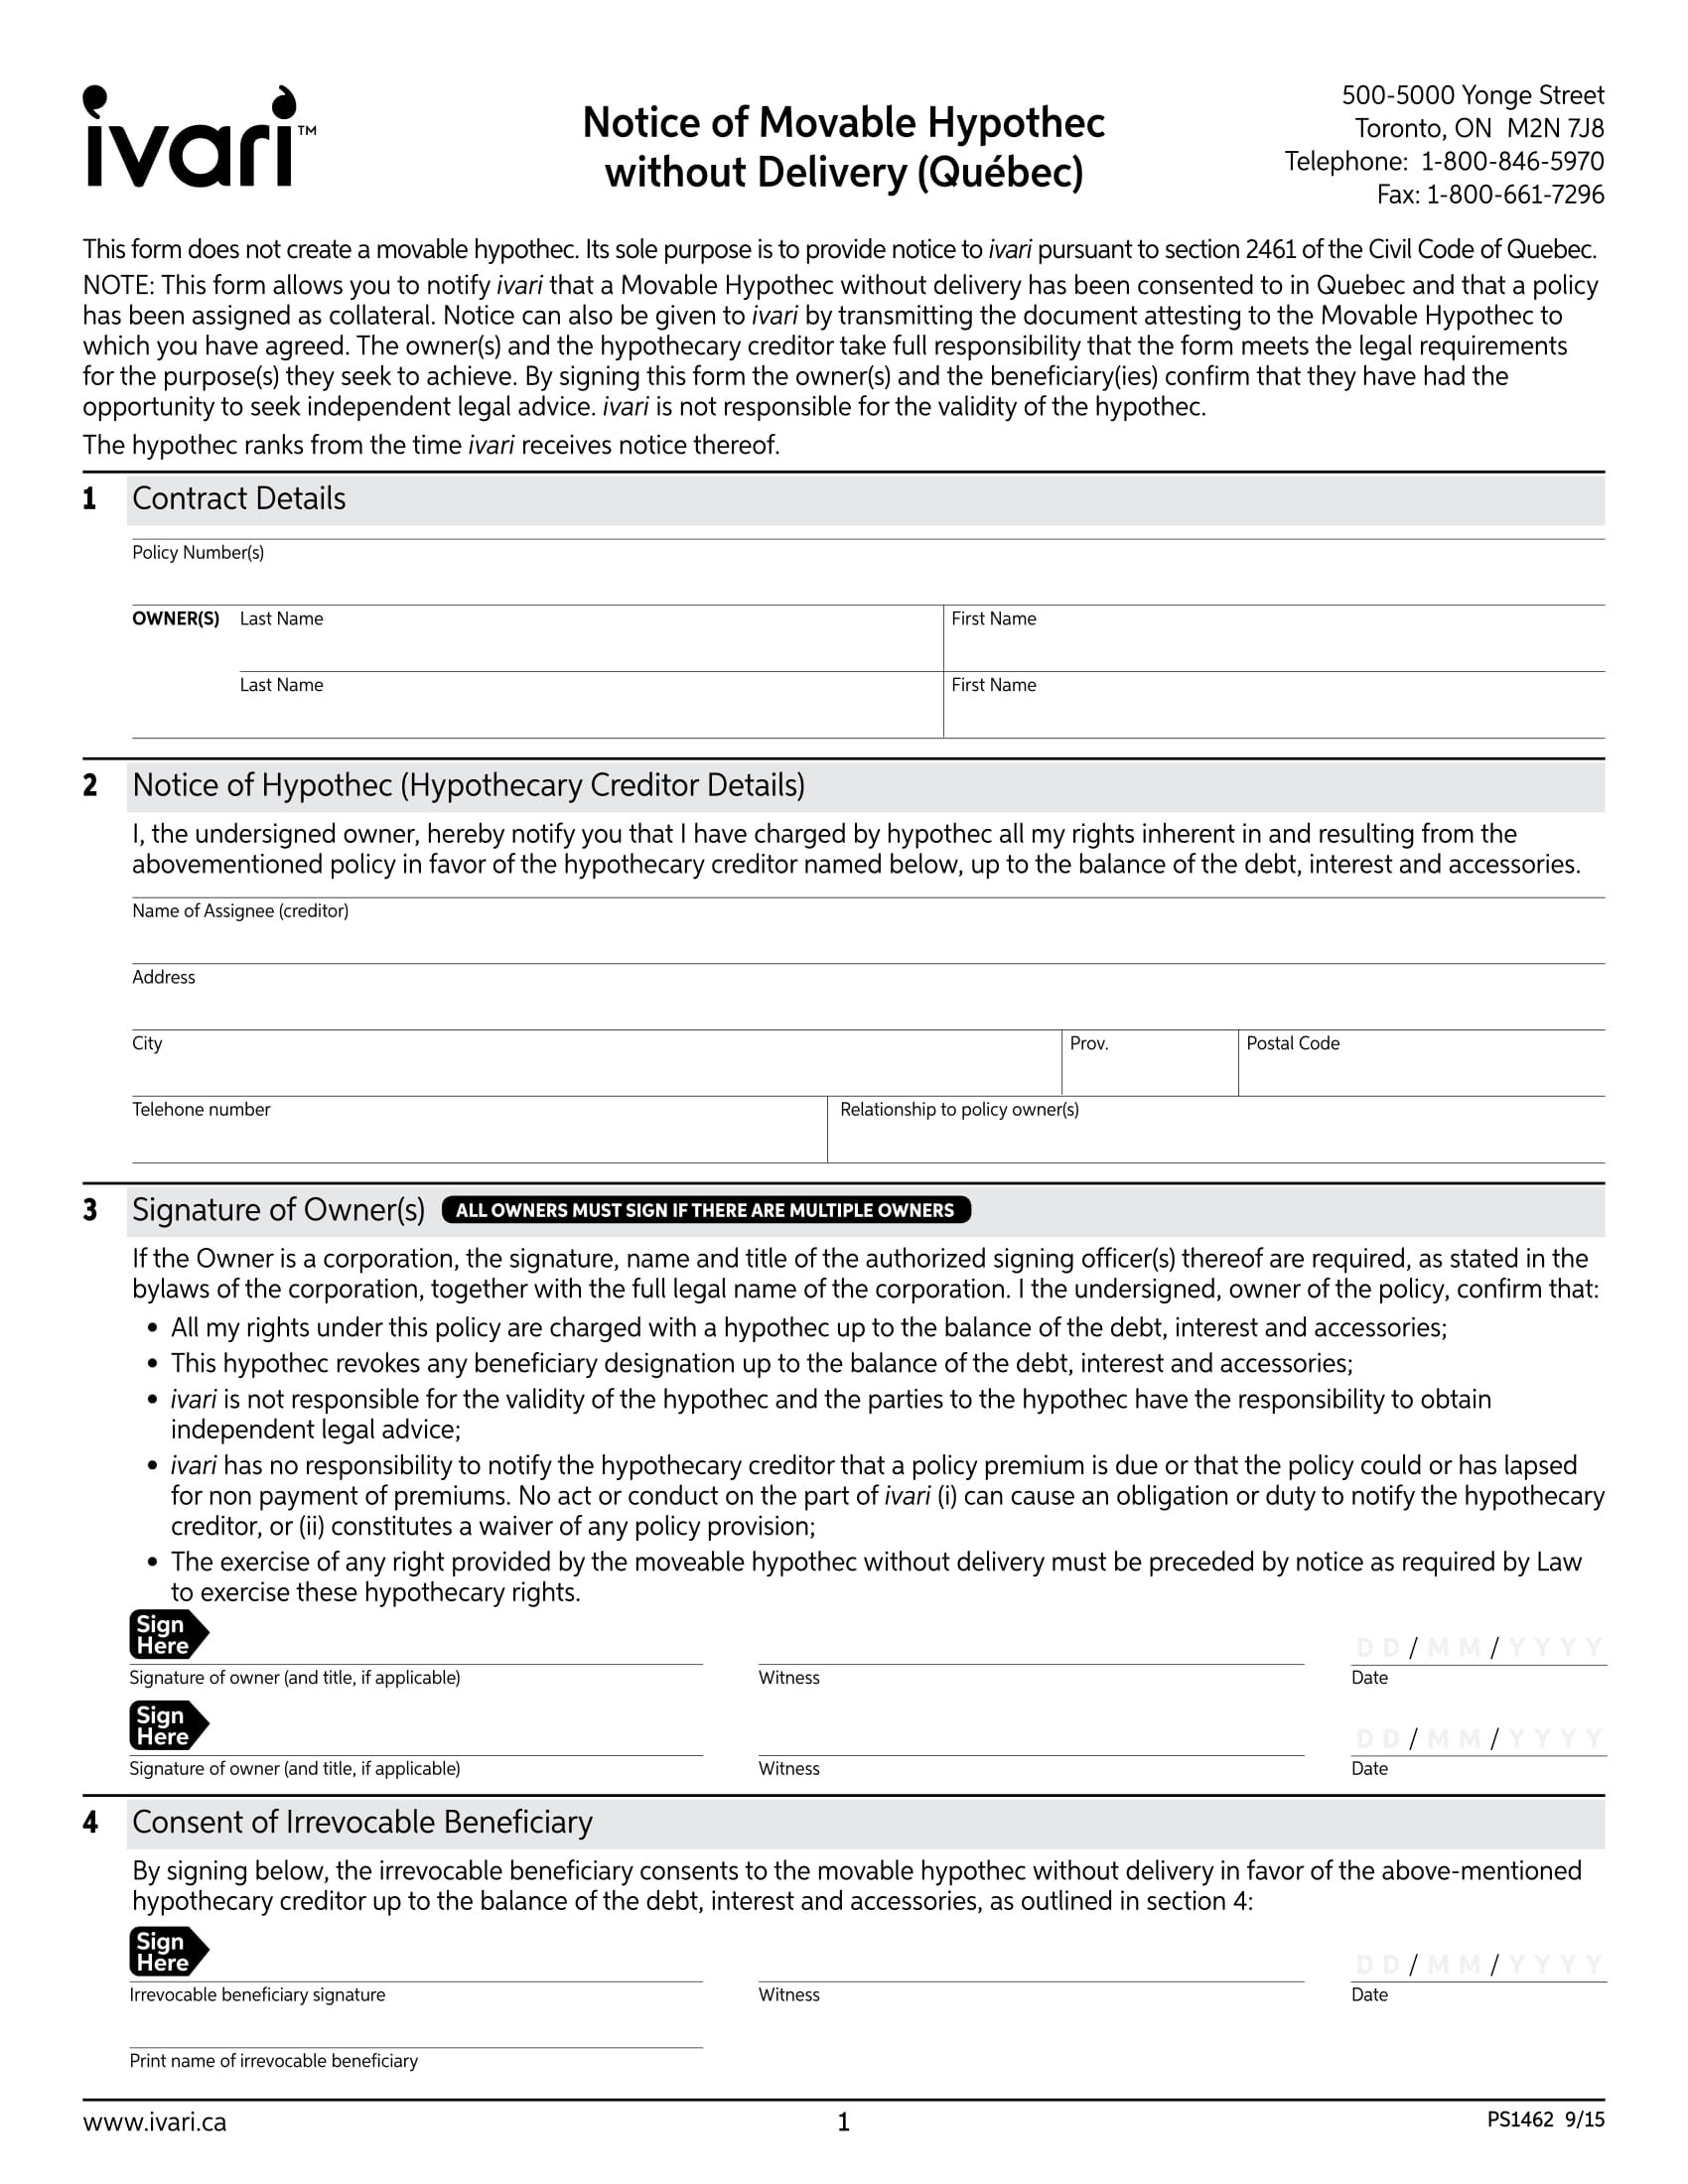 notice of movable hypothec form 1